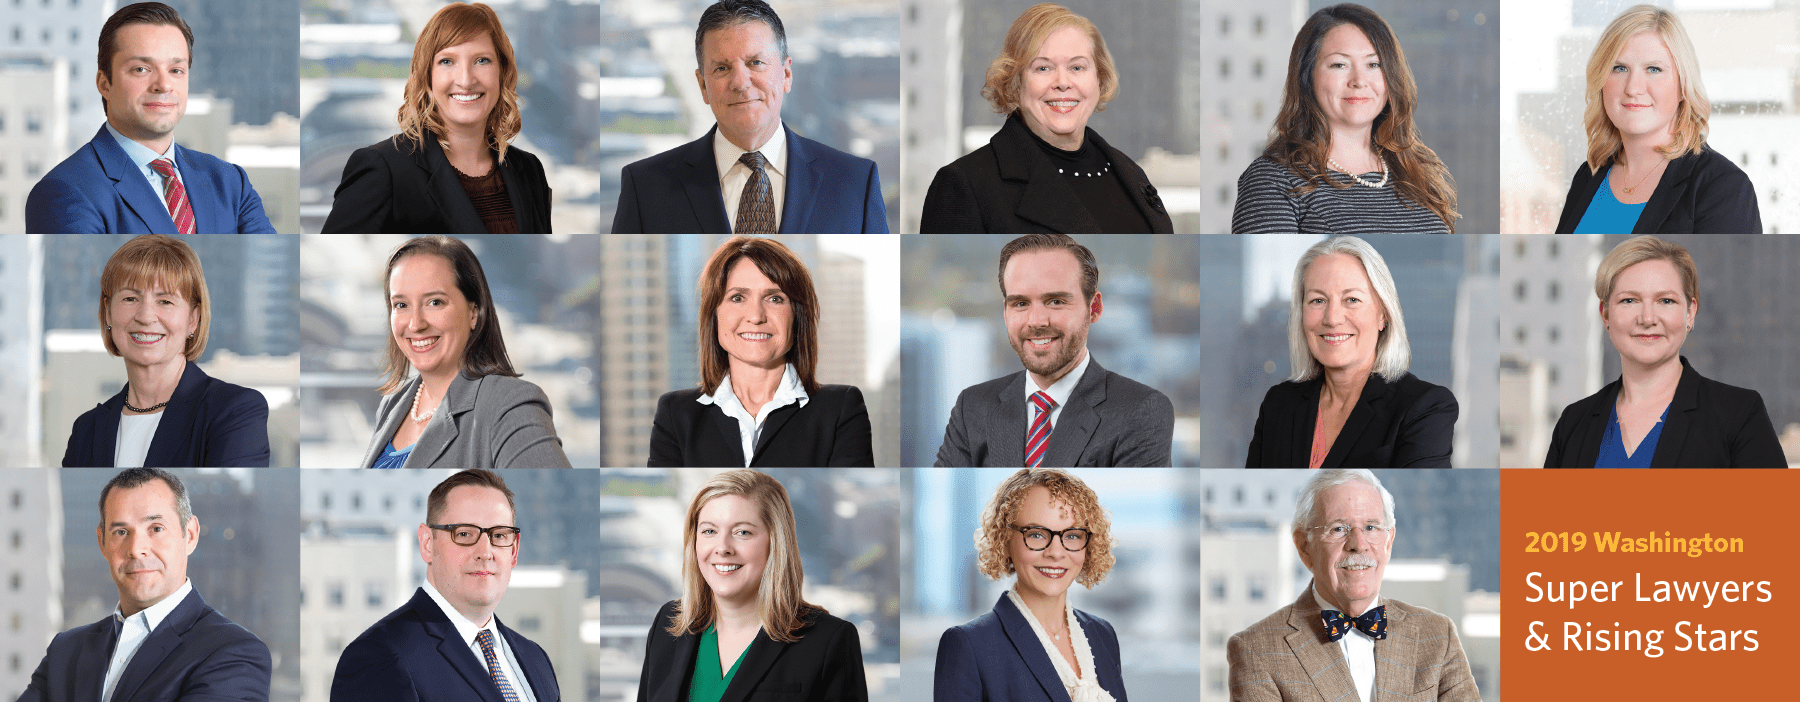 17 McKinley Irvin Attorneys Named 2019 Washington Super Lawyers and Rising Stars